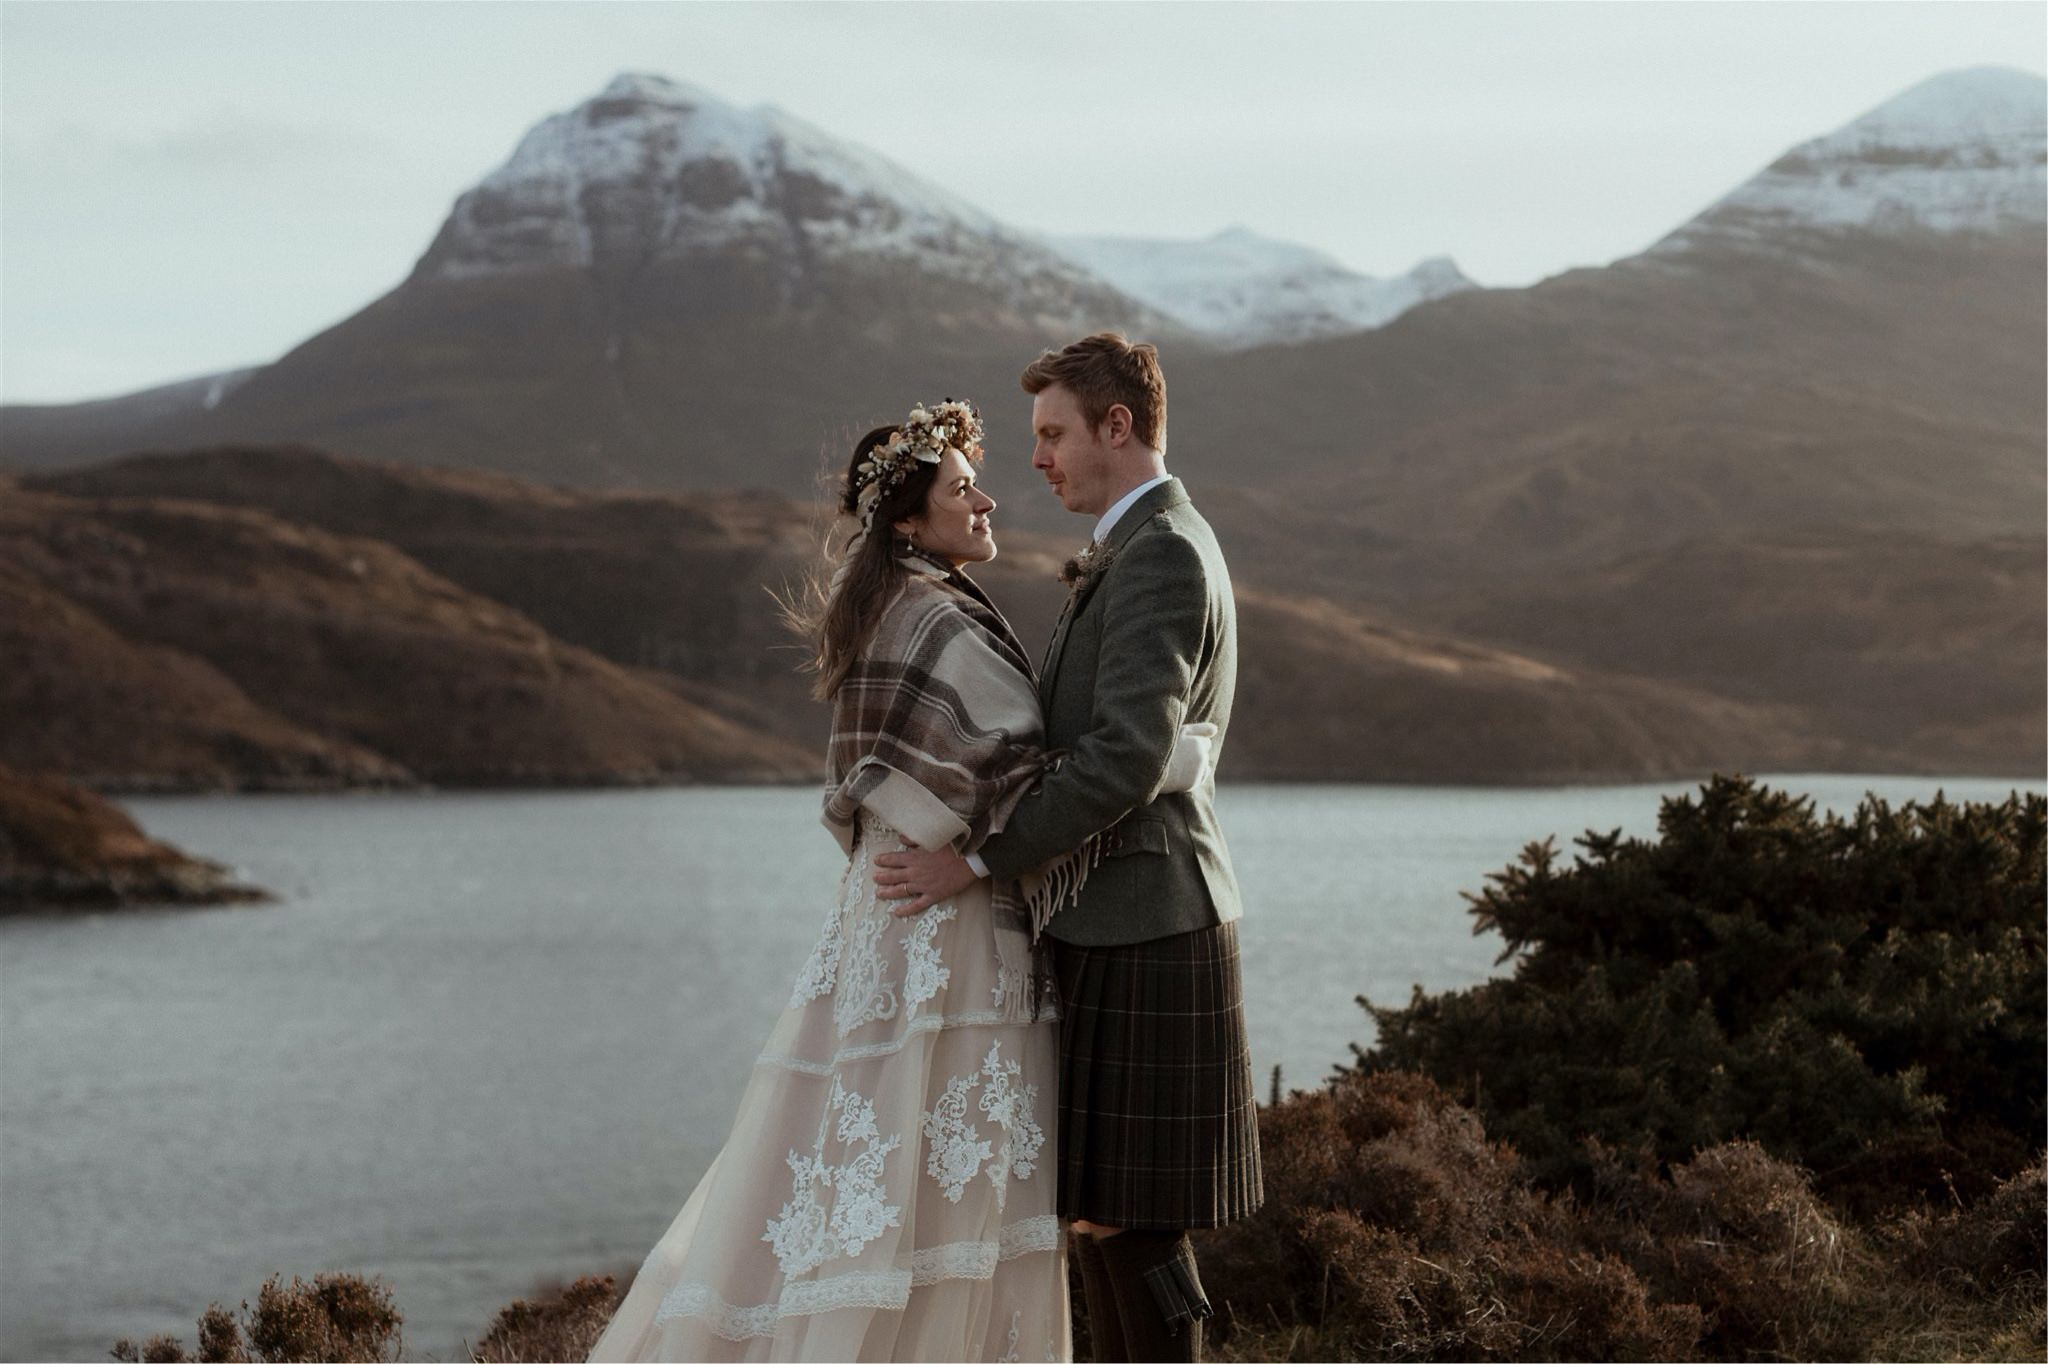 Bride and groom embrace in front of the mountains after their Scottish elopement wedding in Assynt